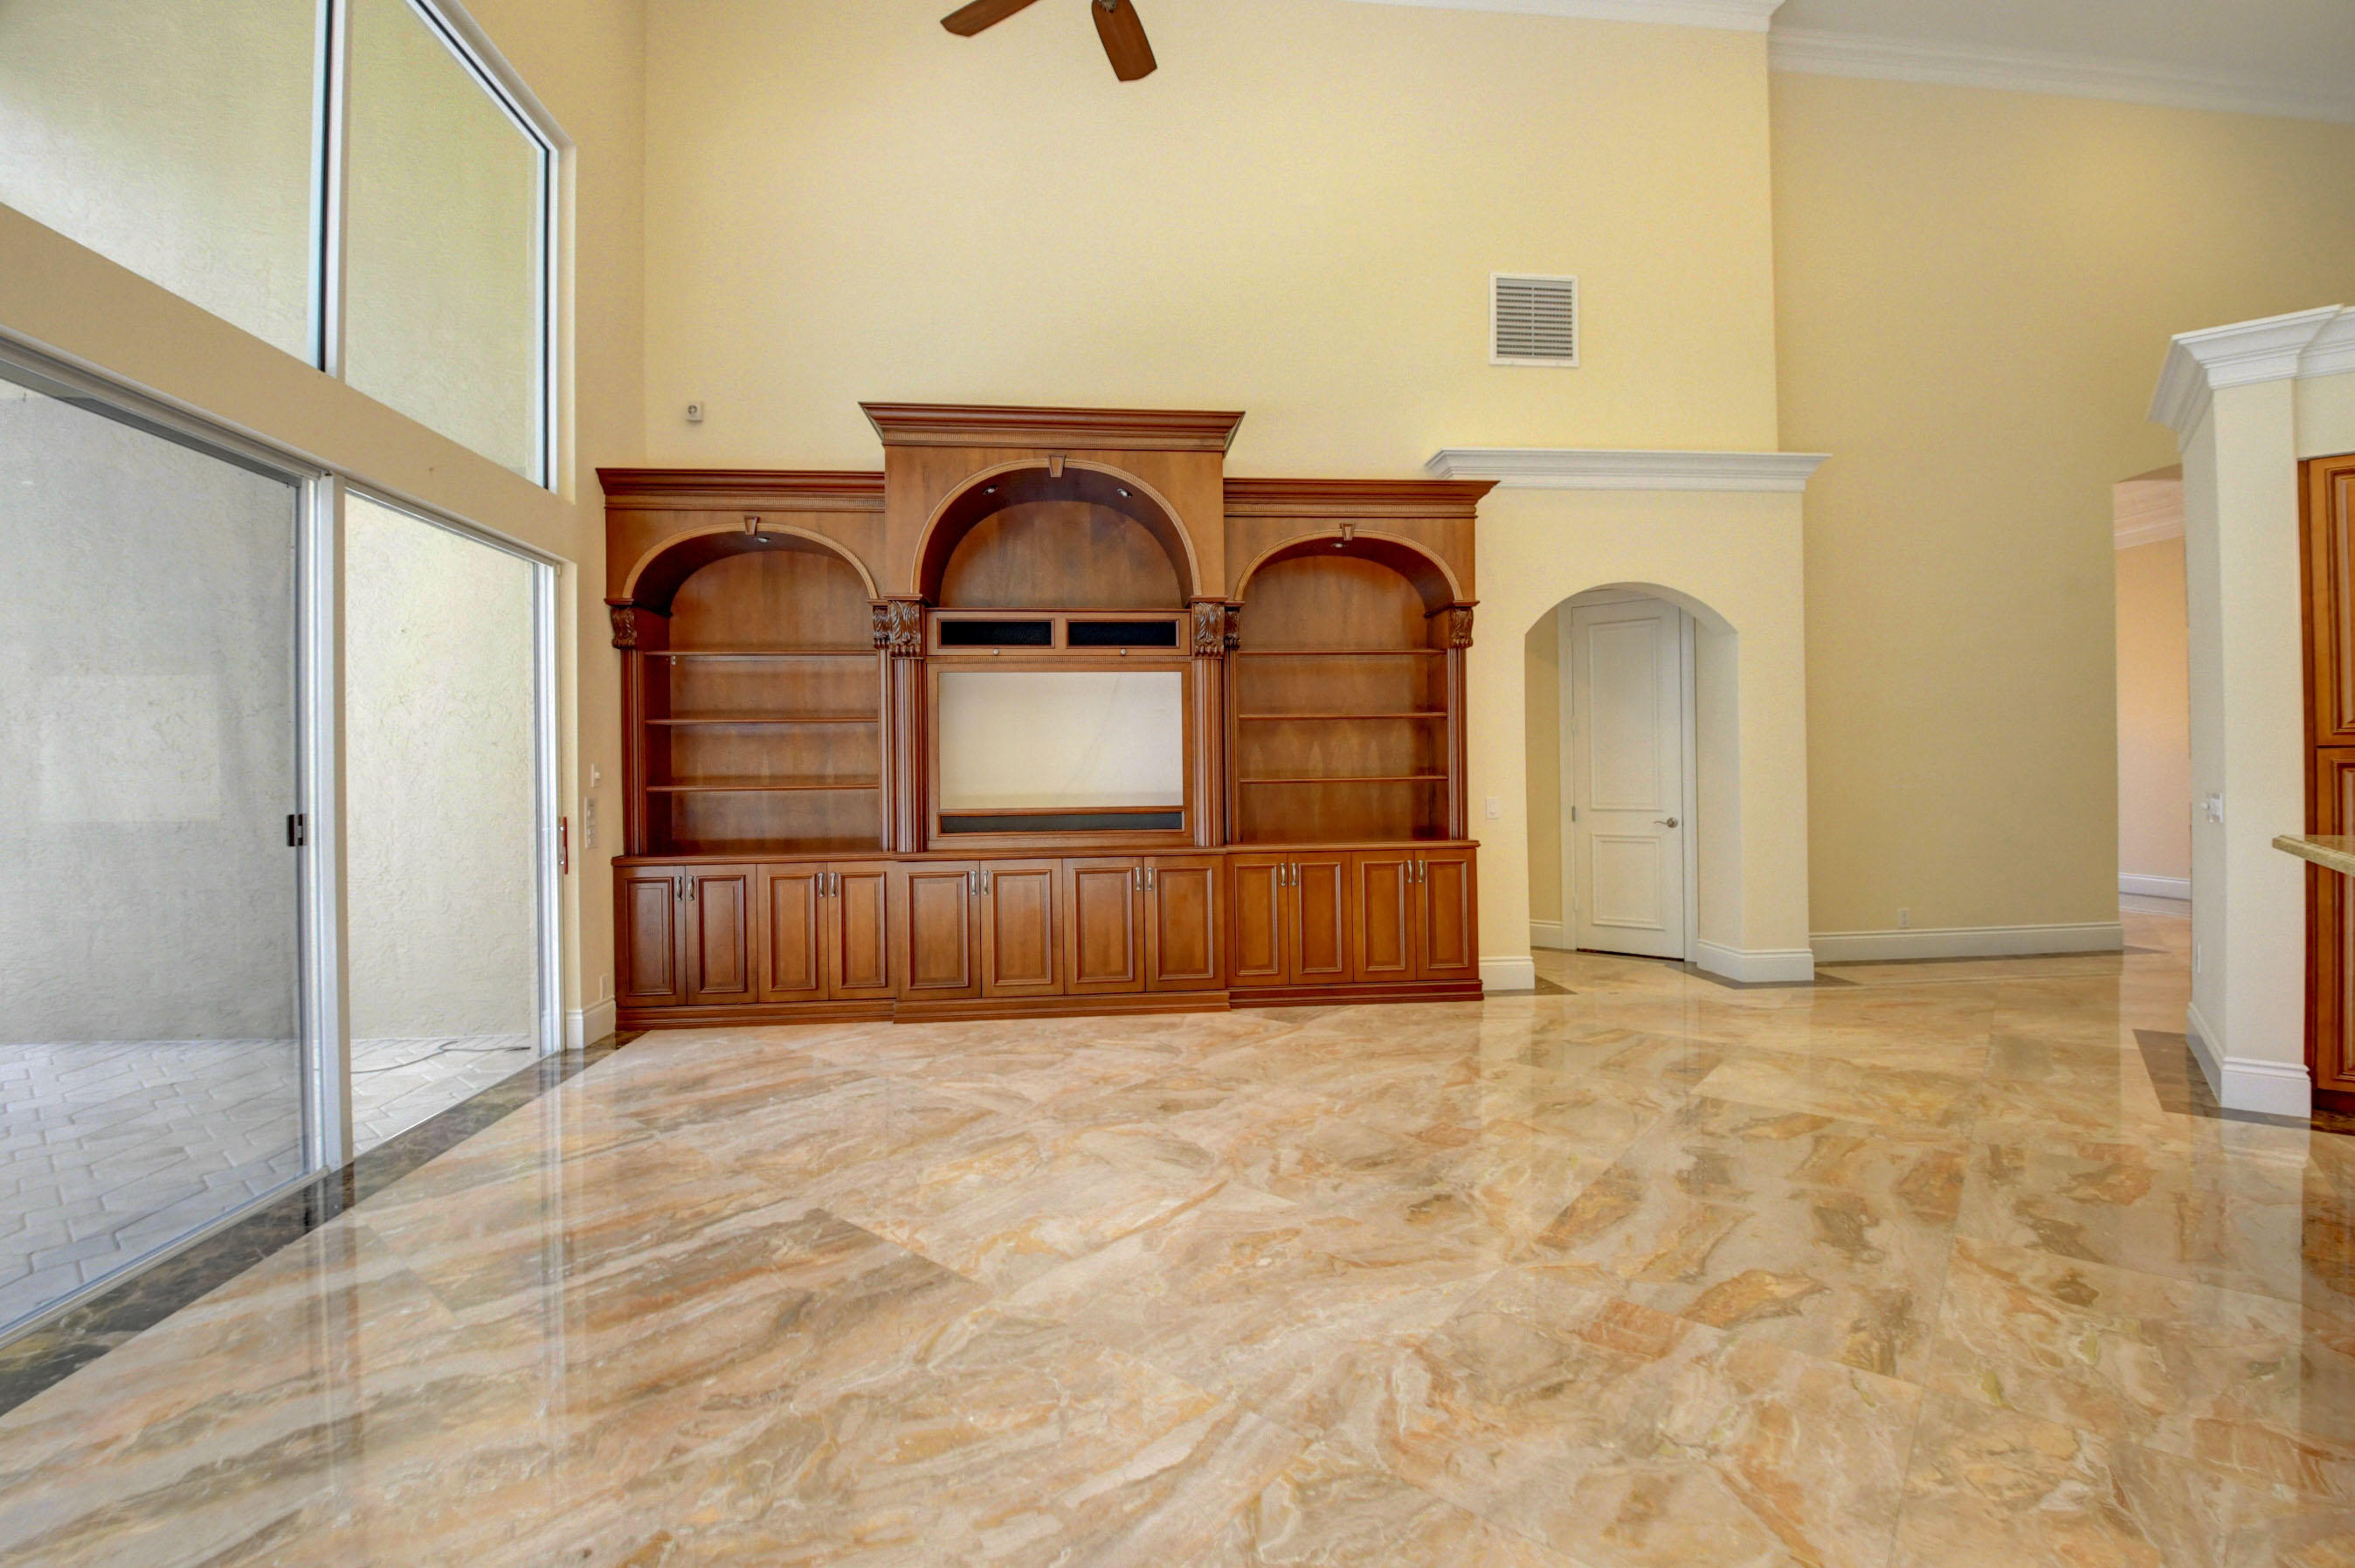 WOODFIELD COUNTRY CLUB PROPERTY